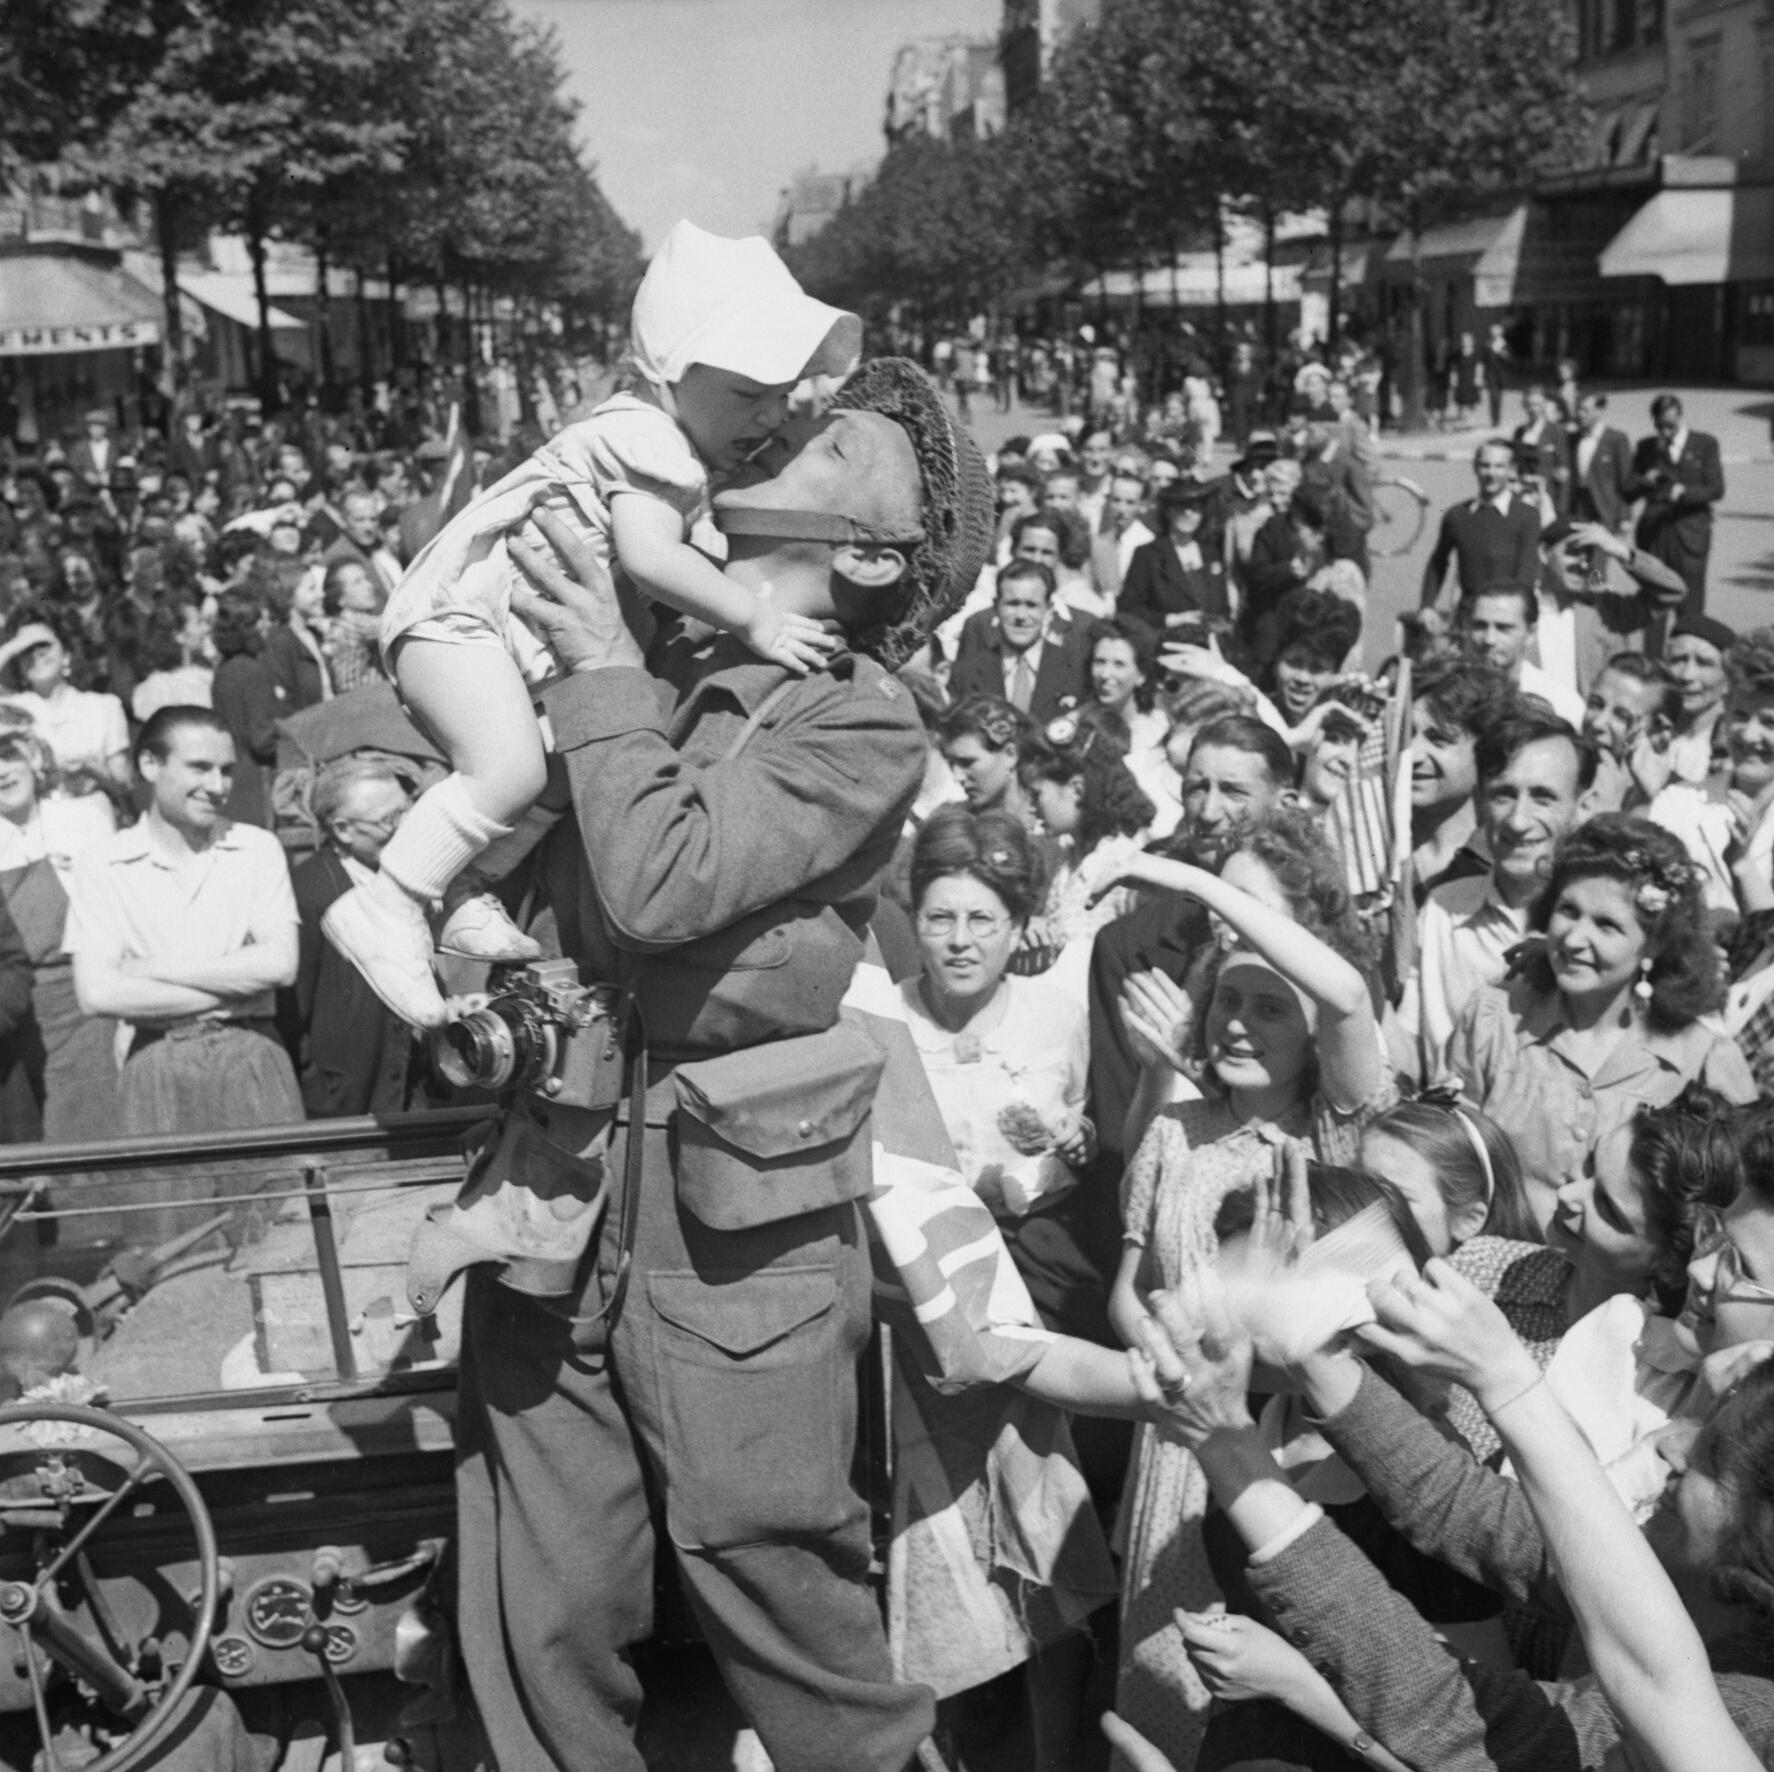 An AFPU photographer kisses a small child before cheering crowds in Paris, August 26, 1944. Photo taken by Captain E. G. Malindine,, No 5 Army Film & Photographic Unit. From the collections of the Imperial War Museums.